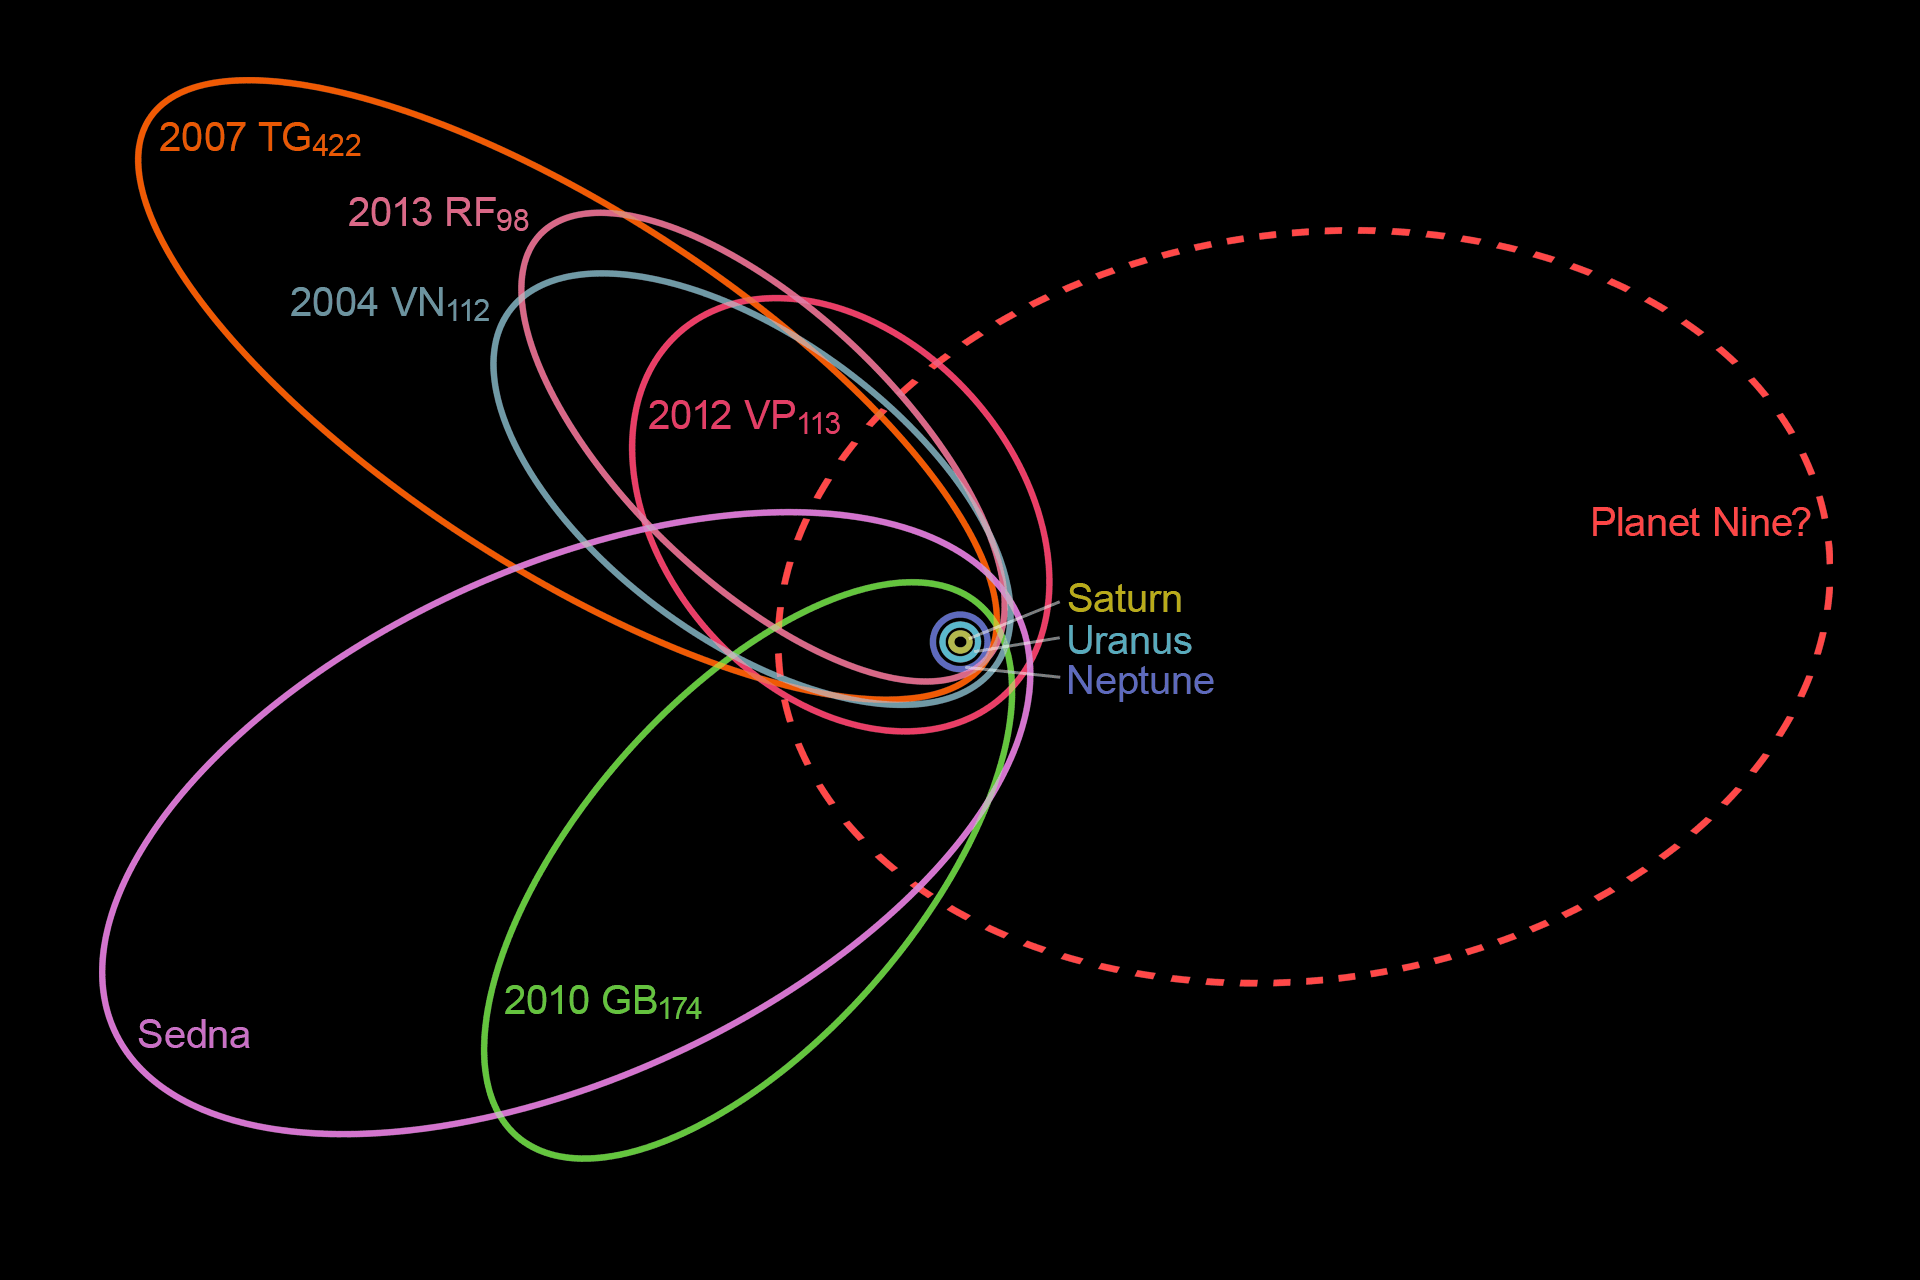 Suggested orbit of Planet X